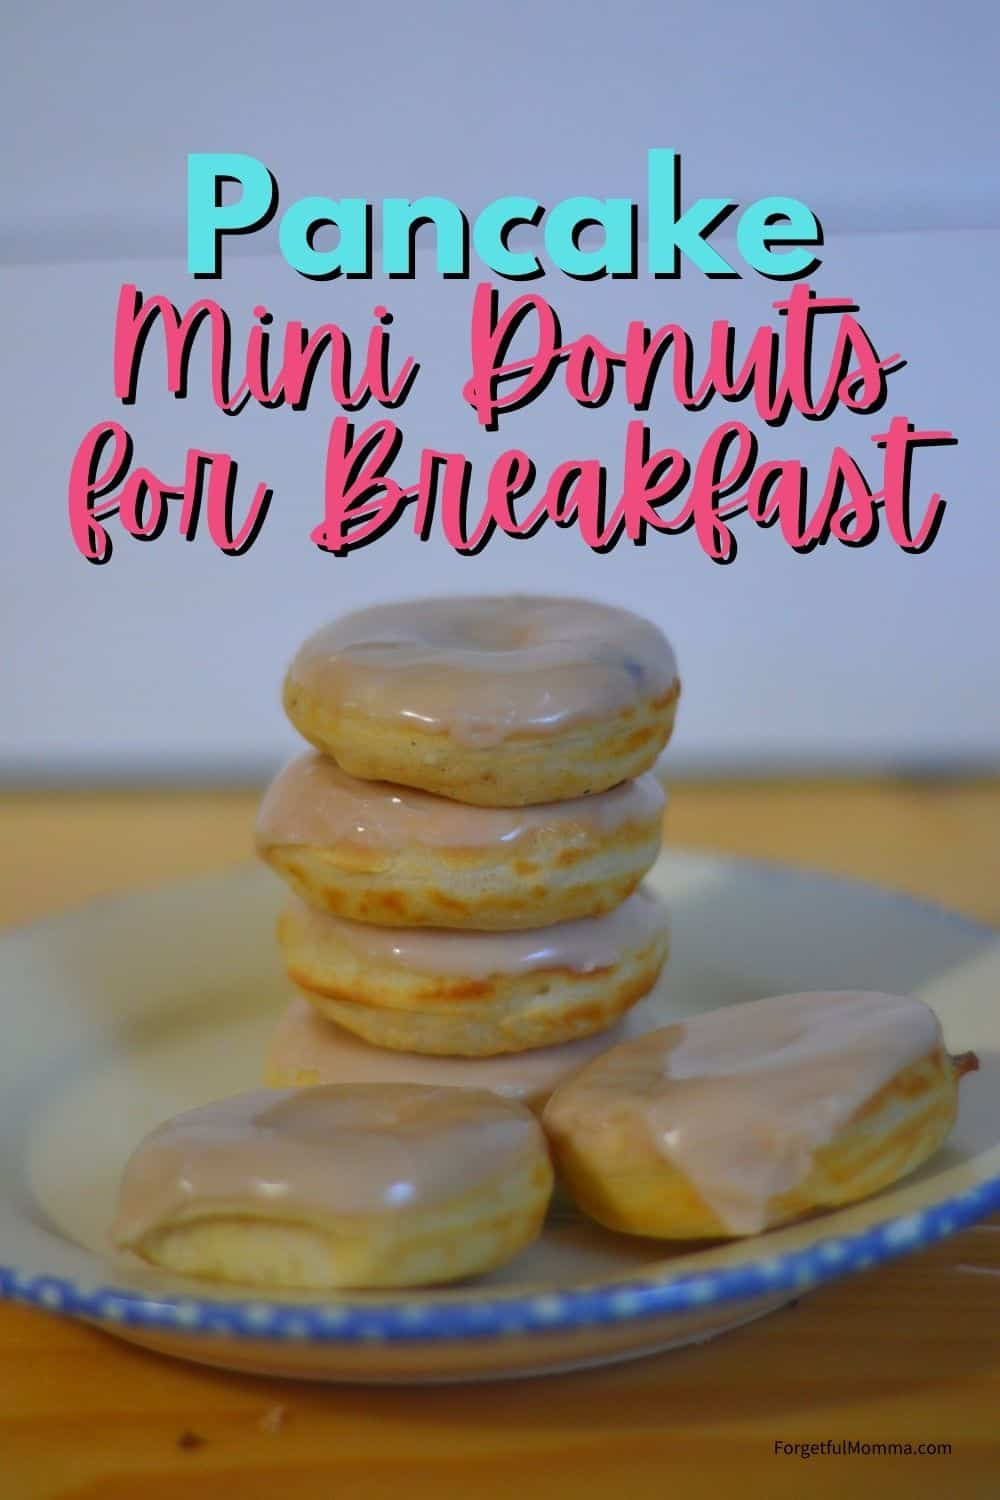 Pancake Mini Donuts for Breakfast - donuts stacked on a plate